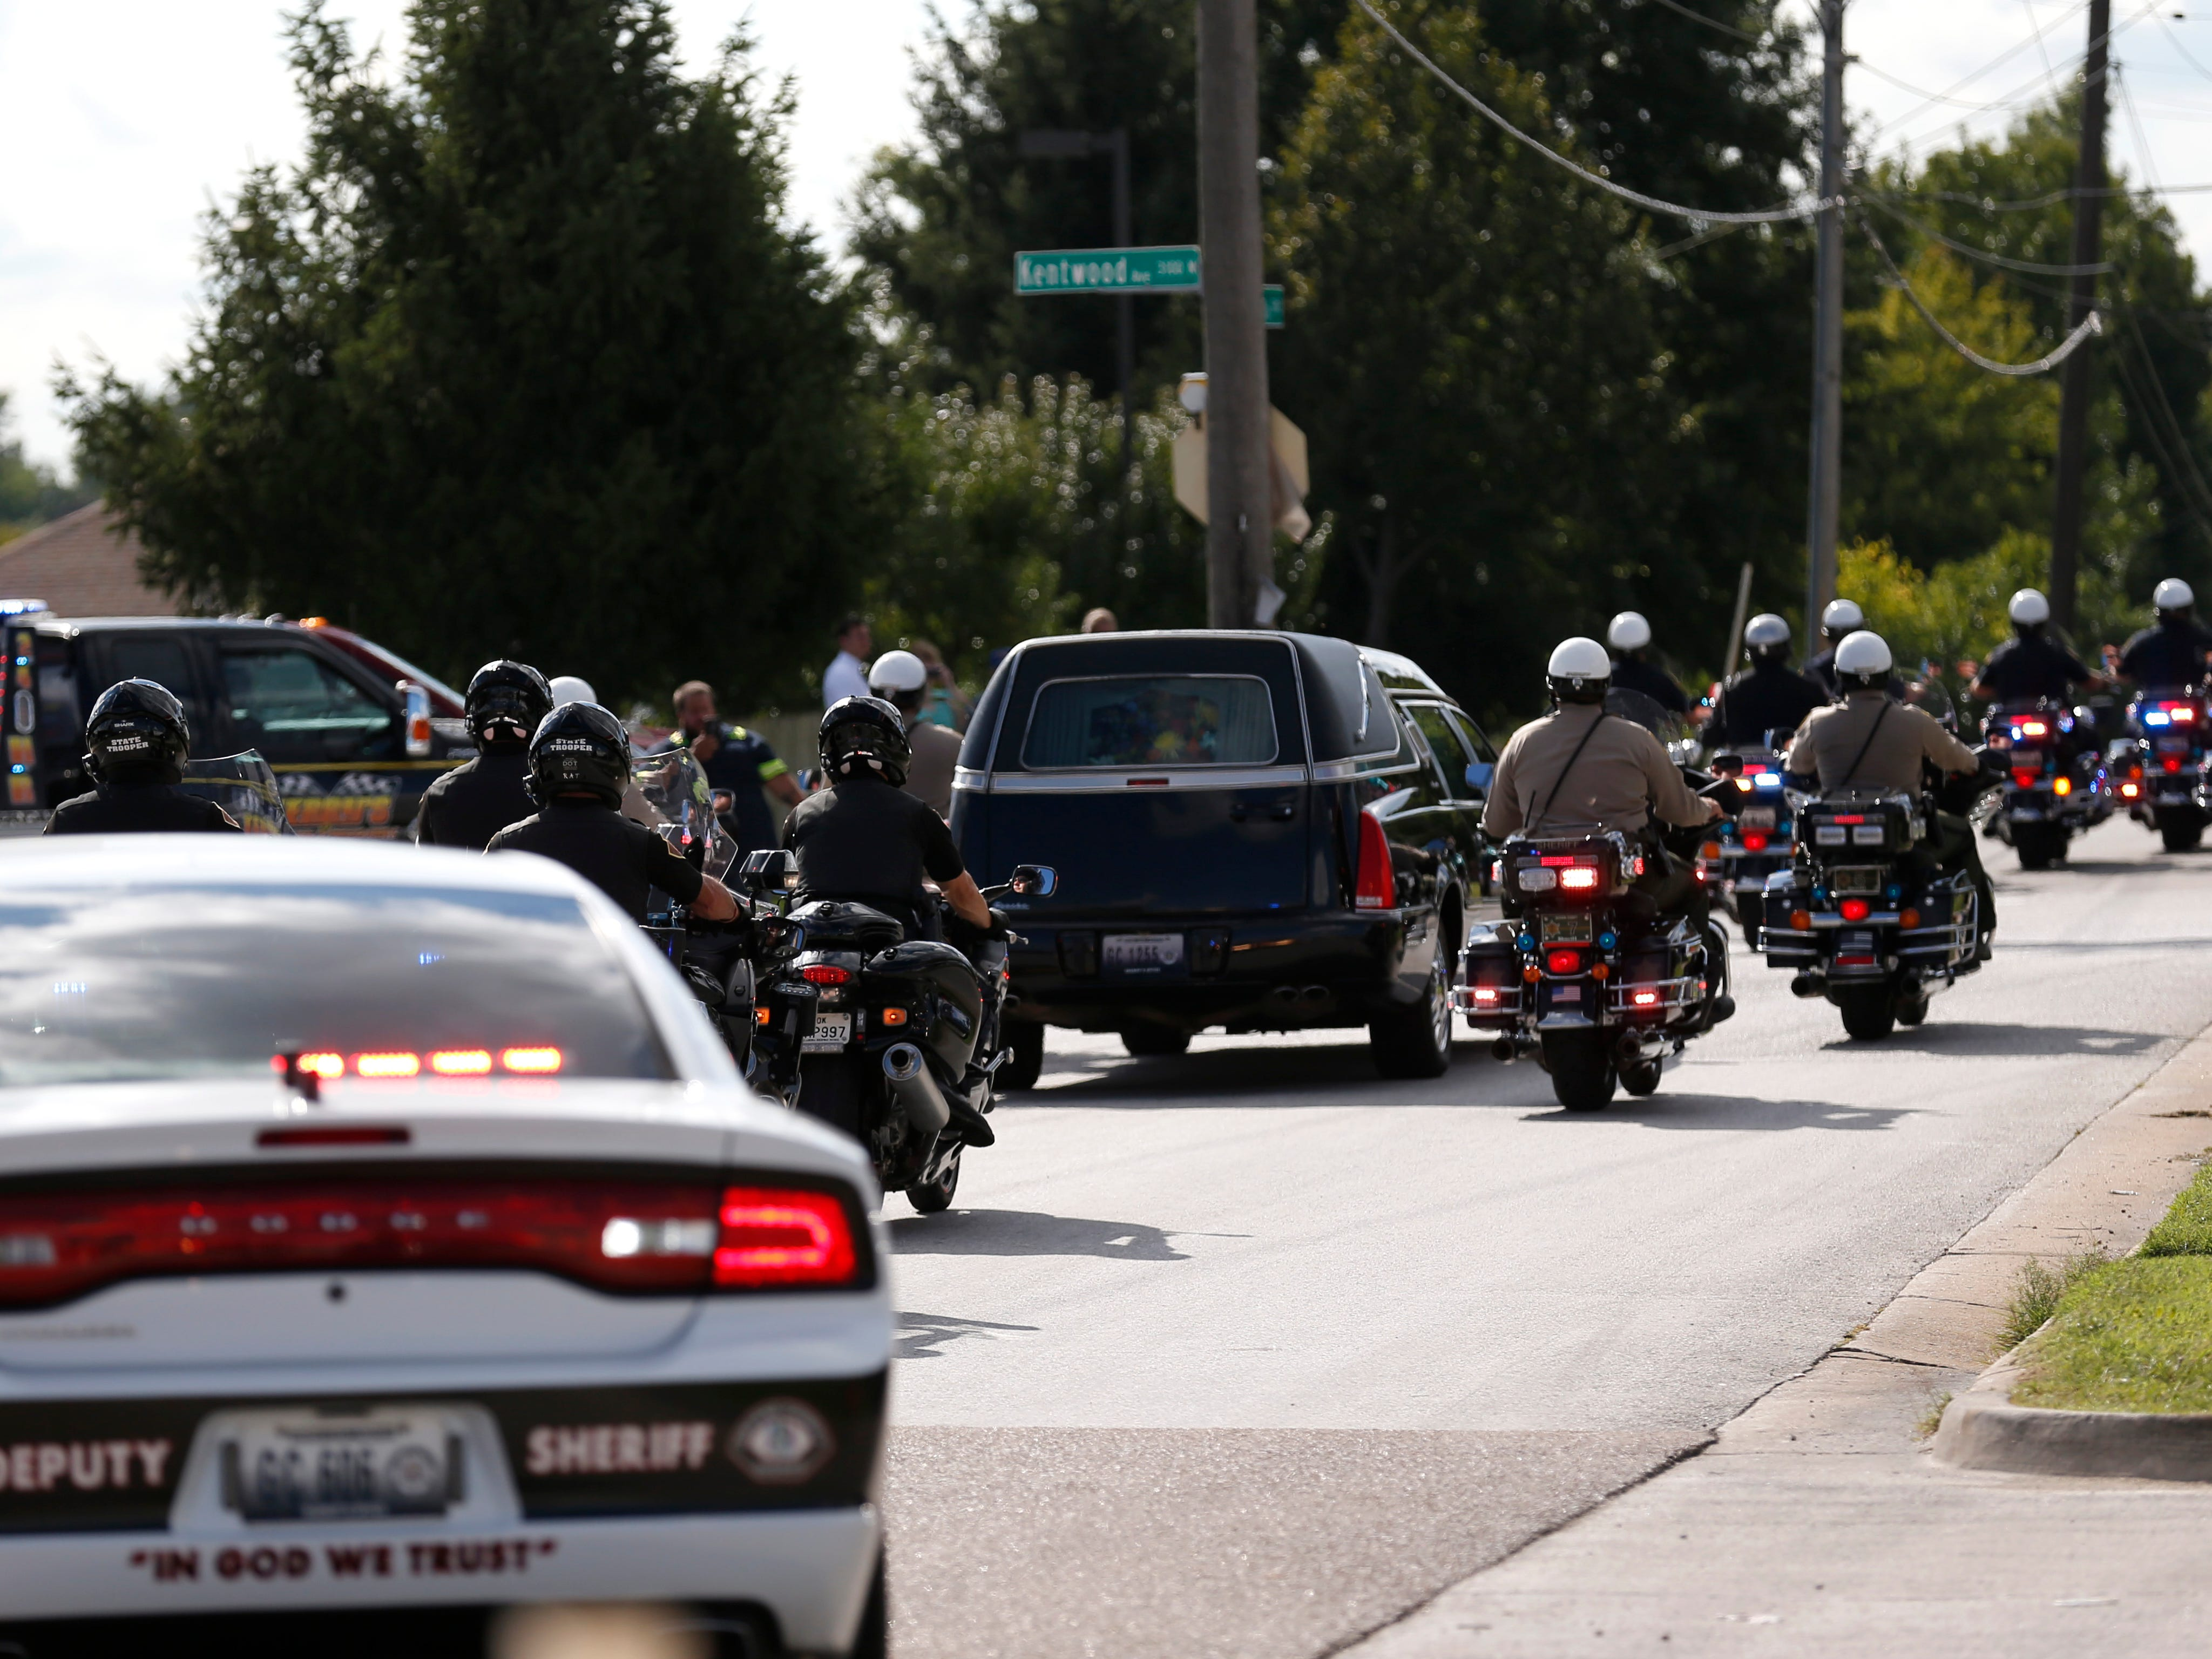 The funeral procession for Deputy Aaron Roberts moves down Glenstone Avenue on Thursday, Sep. 13, 2018.